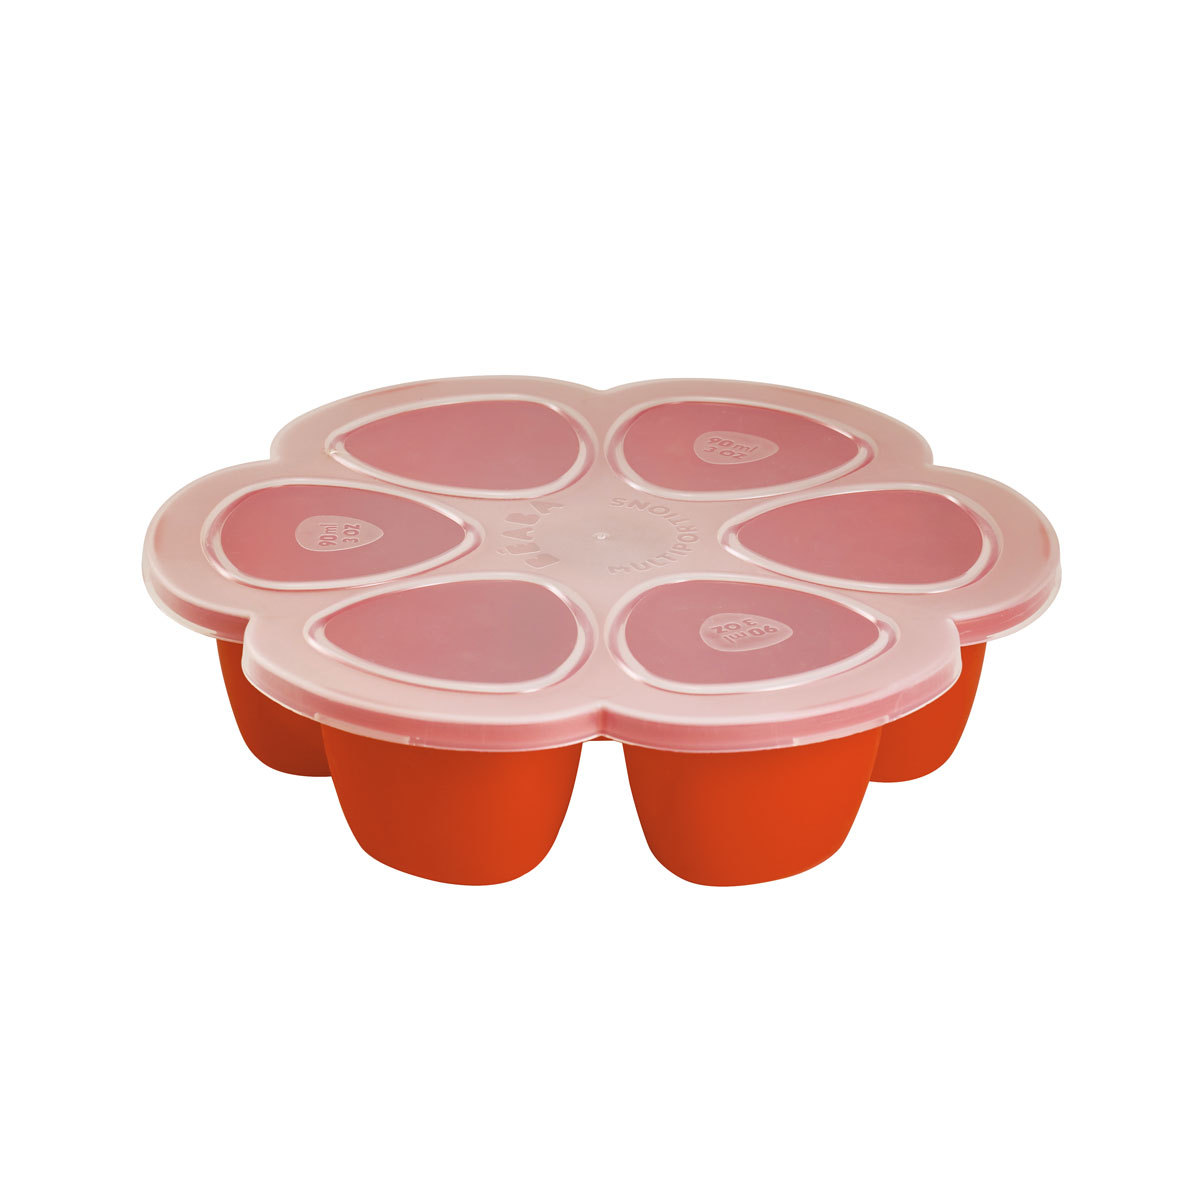 Vaisselle & Couvert Multi Portions Silicone 6 x 90 ml - Paprika Multi Portions Silicone 6 x 90 ml - Paprika